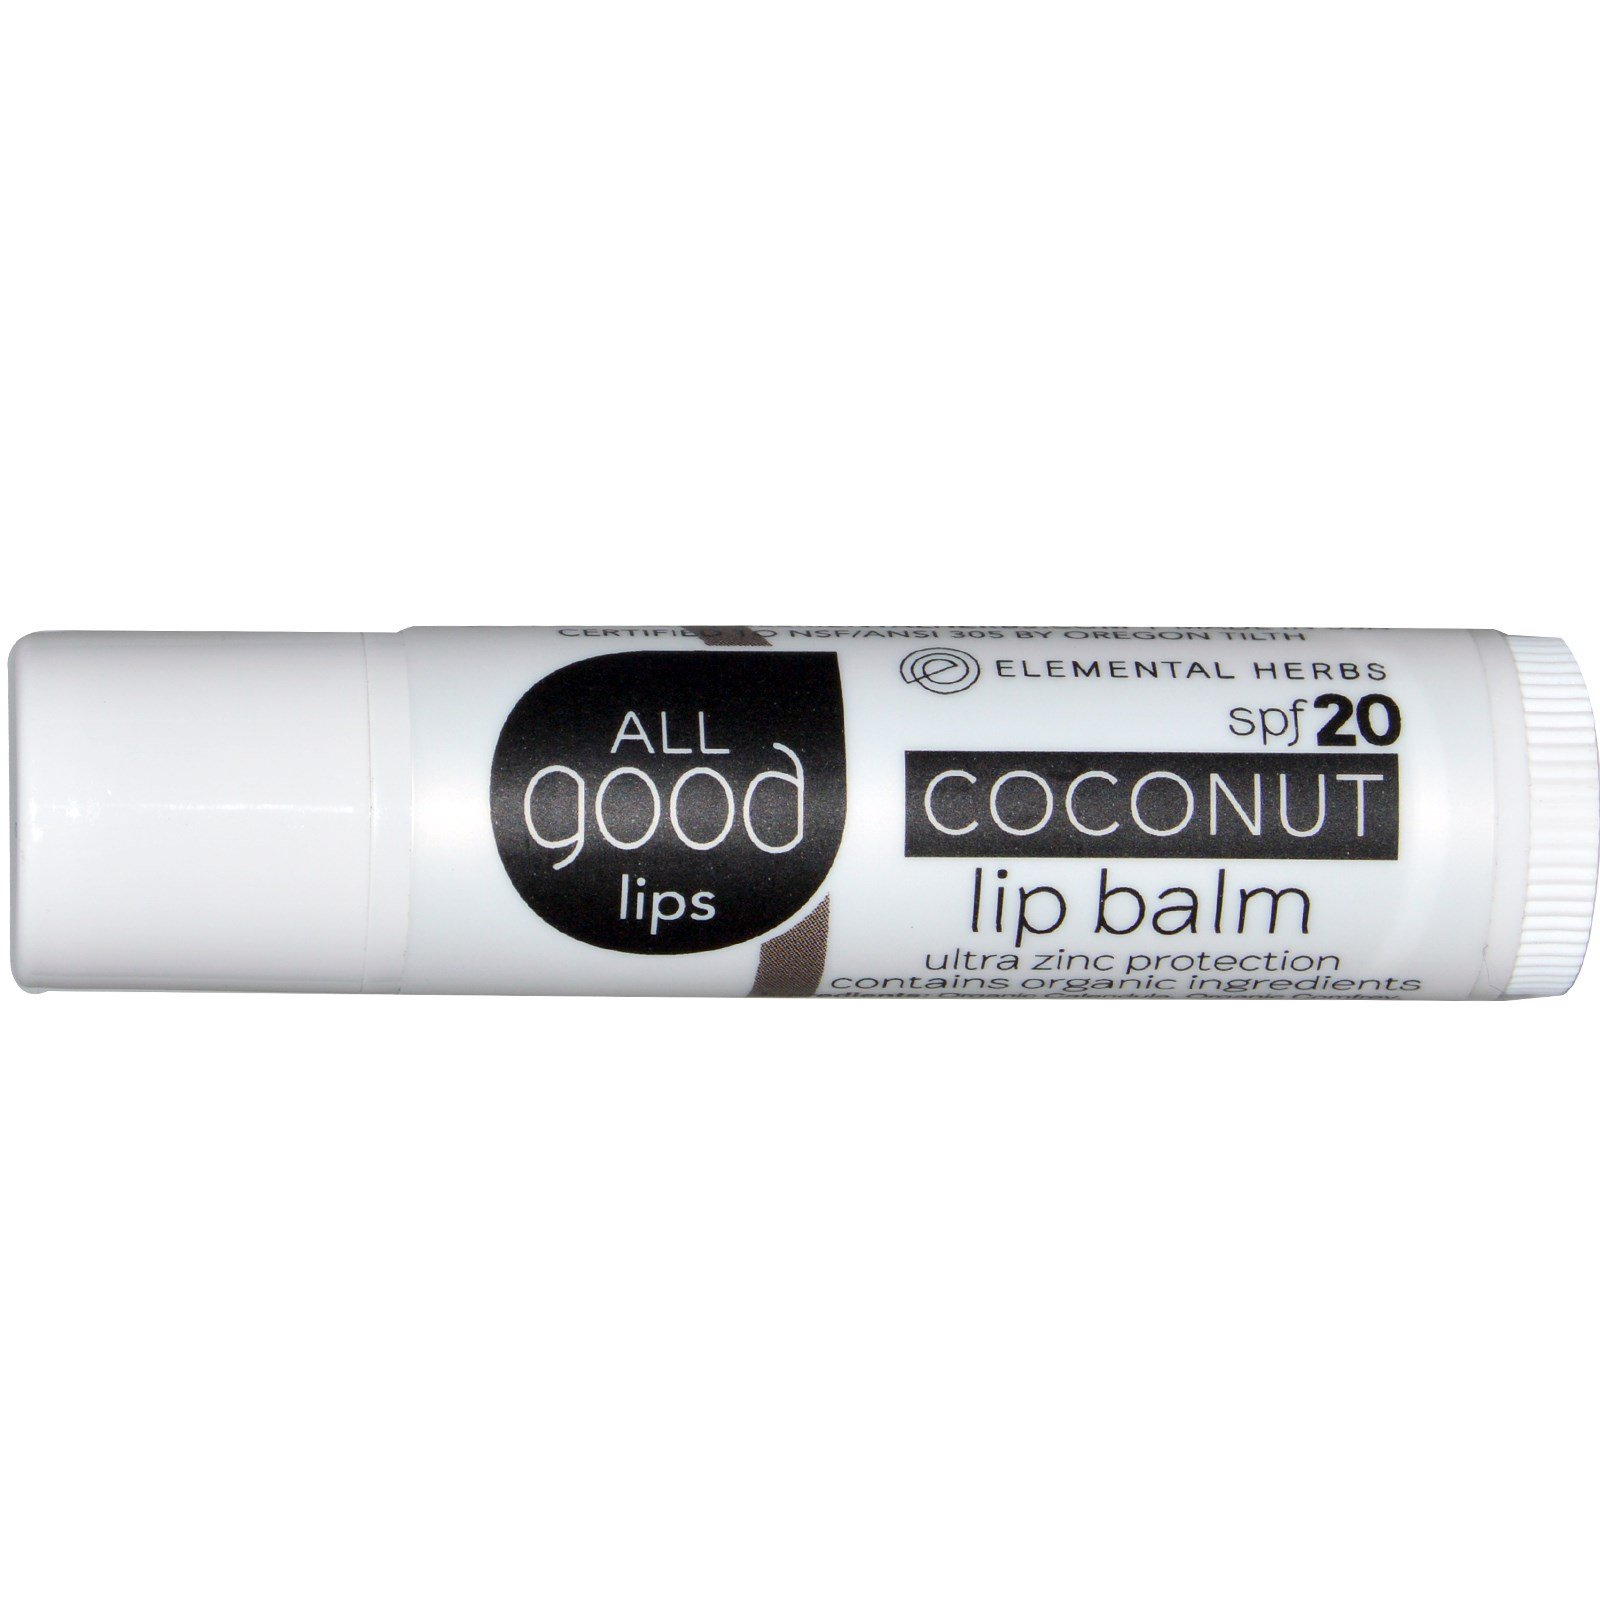 Elemental Herbs - All Good Lips SPF 20 Lip Balm Unscented - 4.25 Gram(s) (pack of 4) MISSAMMY 180 Needles Unchangeable Head Eye Care System Micro Needle Roller (0.25mm)